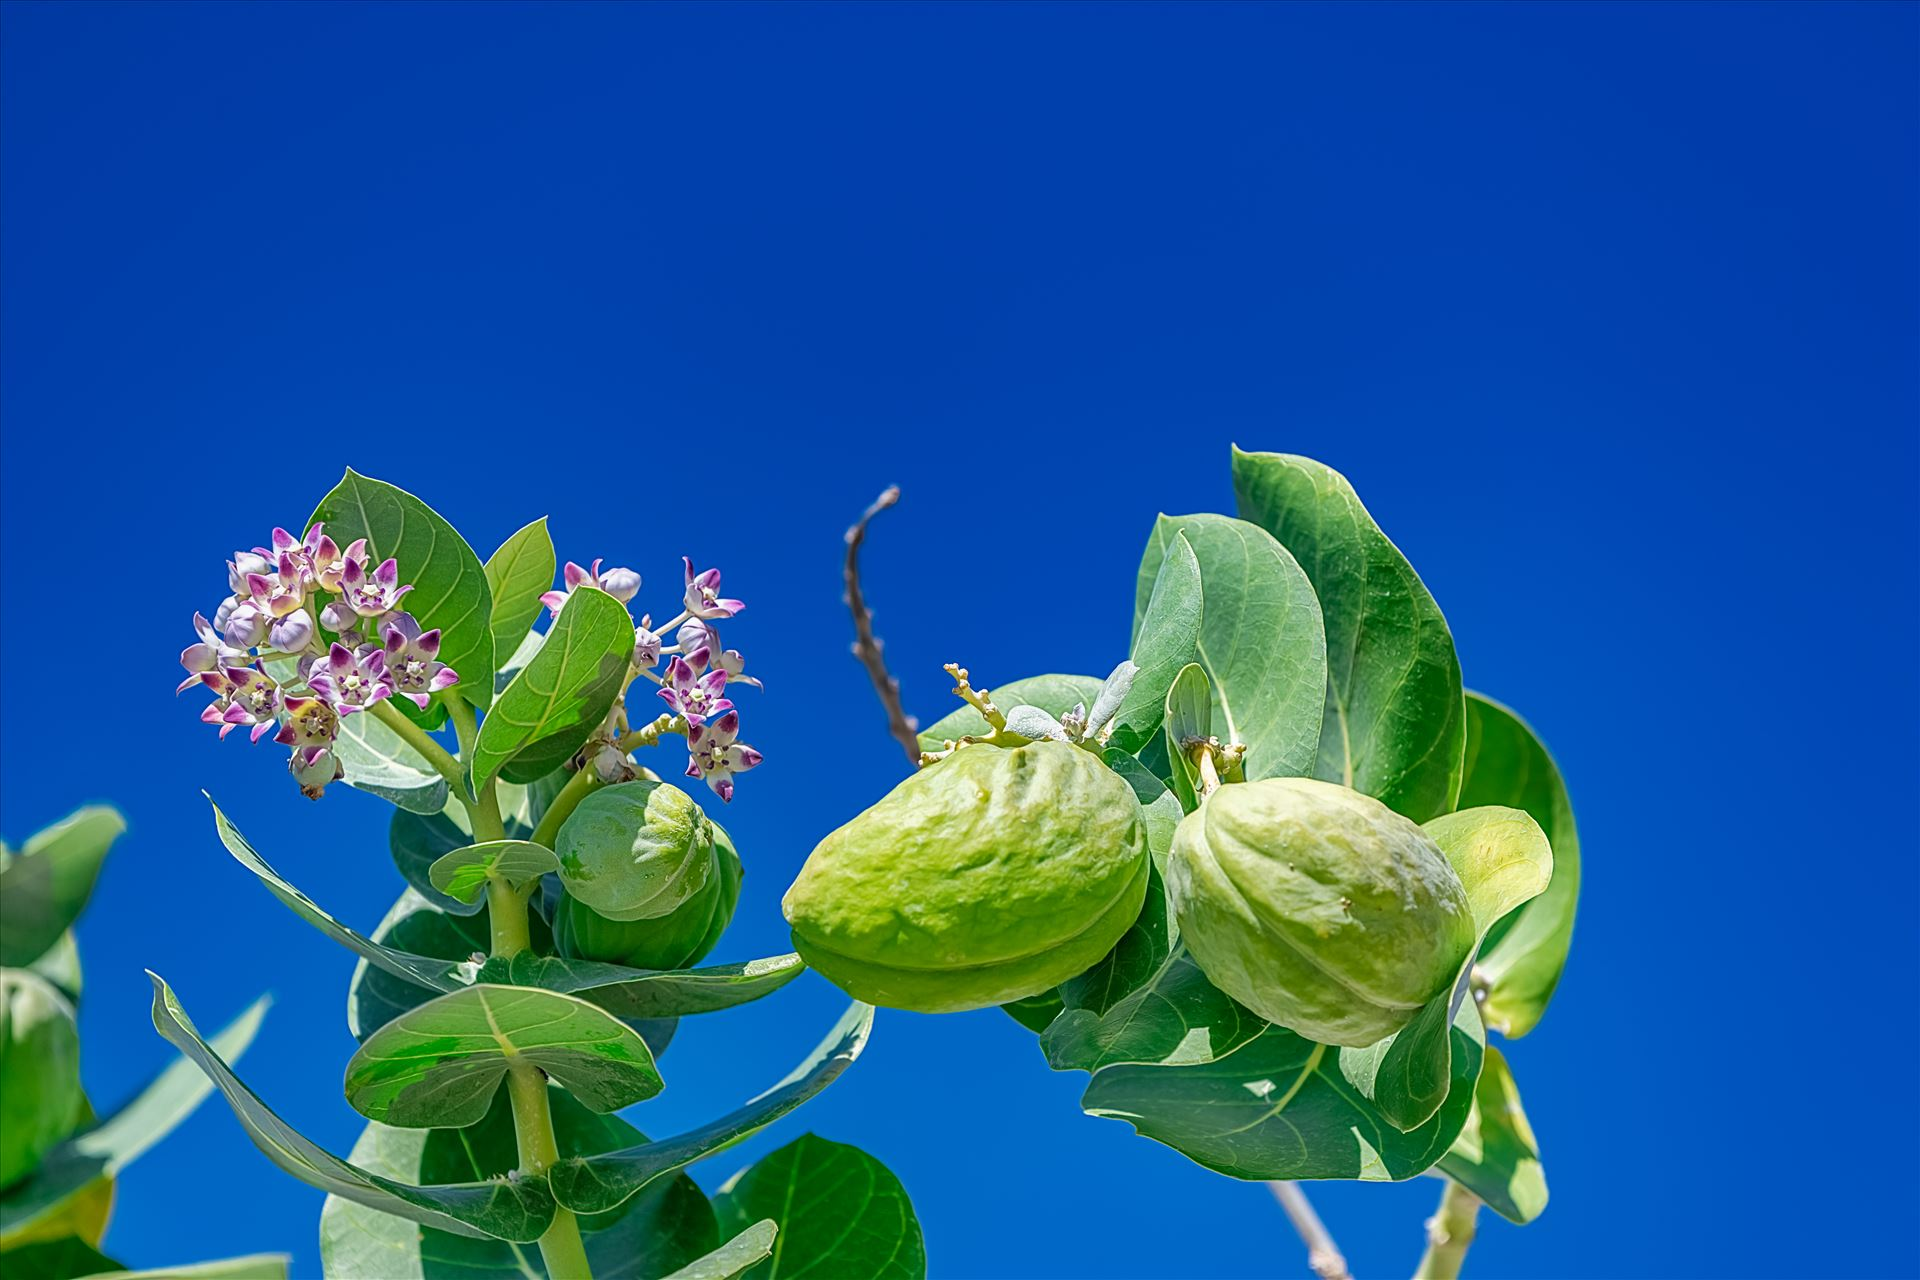 guava guava tree blue background by Terry Kelly Photography